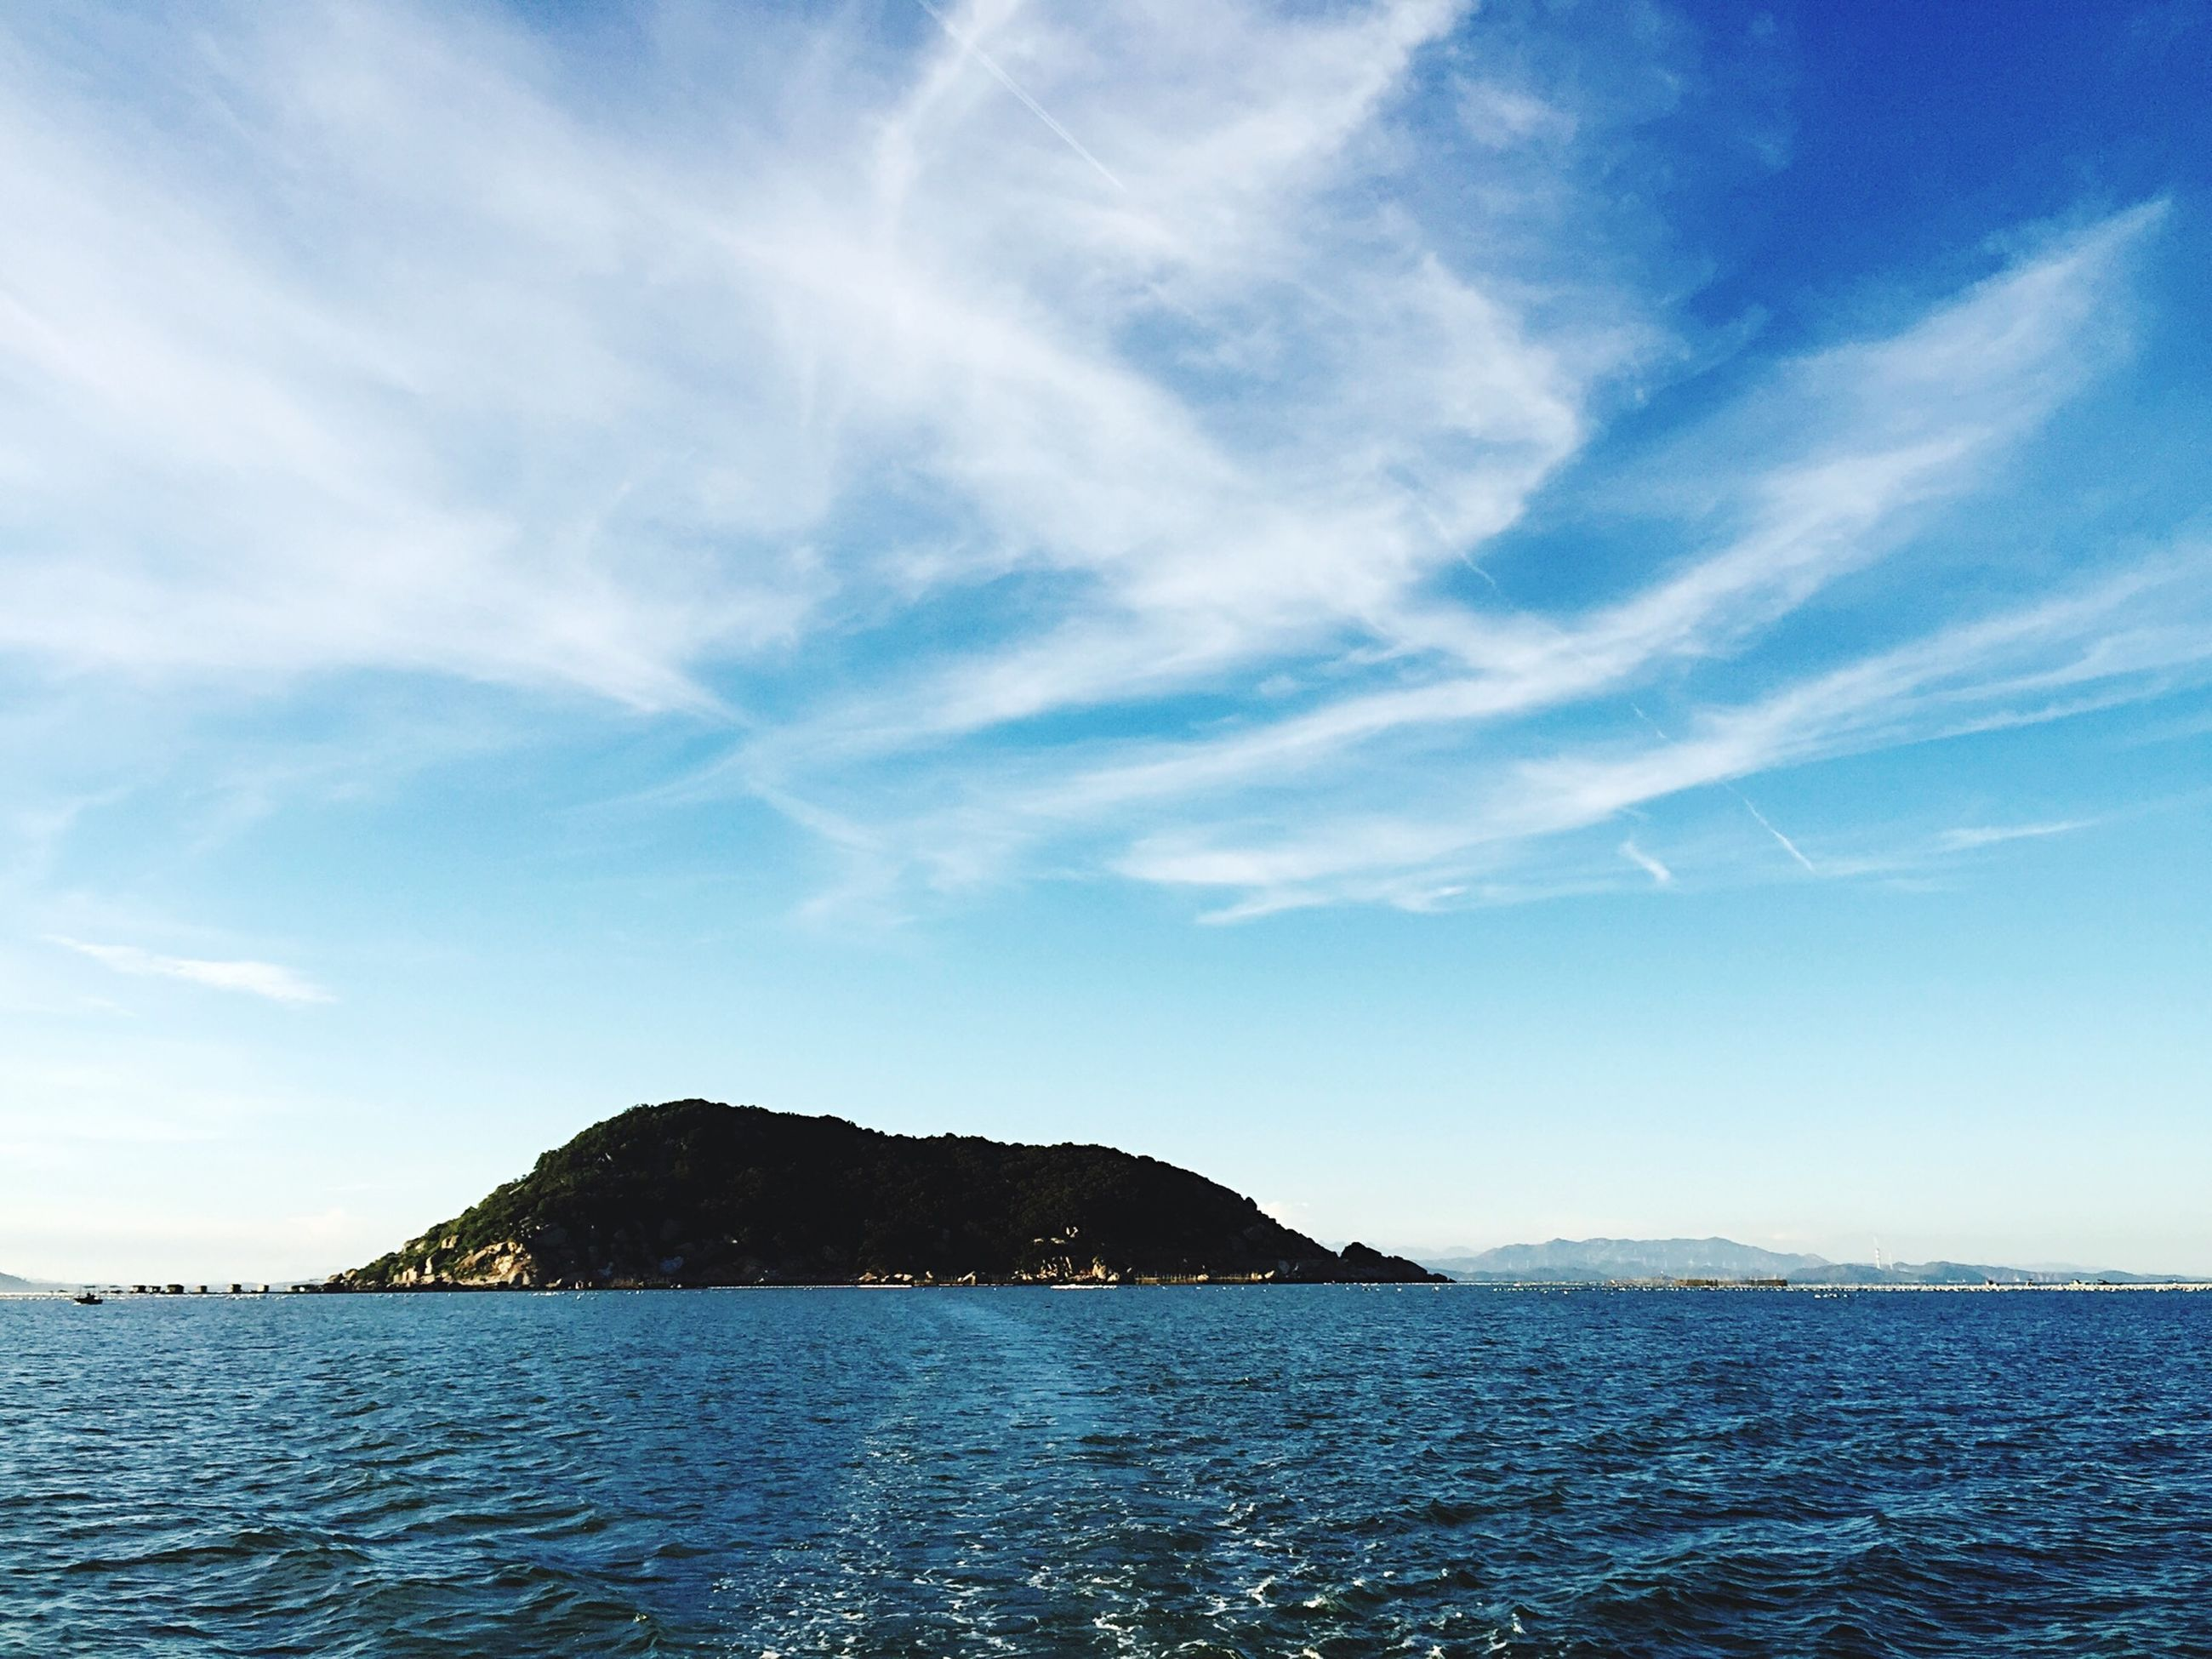 sea, water, scenics, tranquil scene, waterfront, tranquility, sky, mountain, beauty in nature, nature, blue, rippled, idyllic, cloud, cloud - sky, mountain range, rock formation, non-urban scene, day, remote